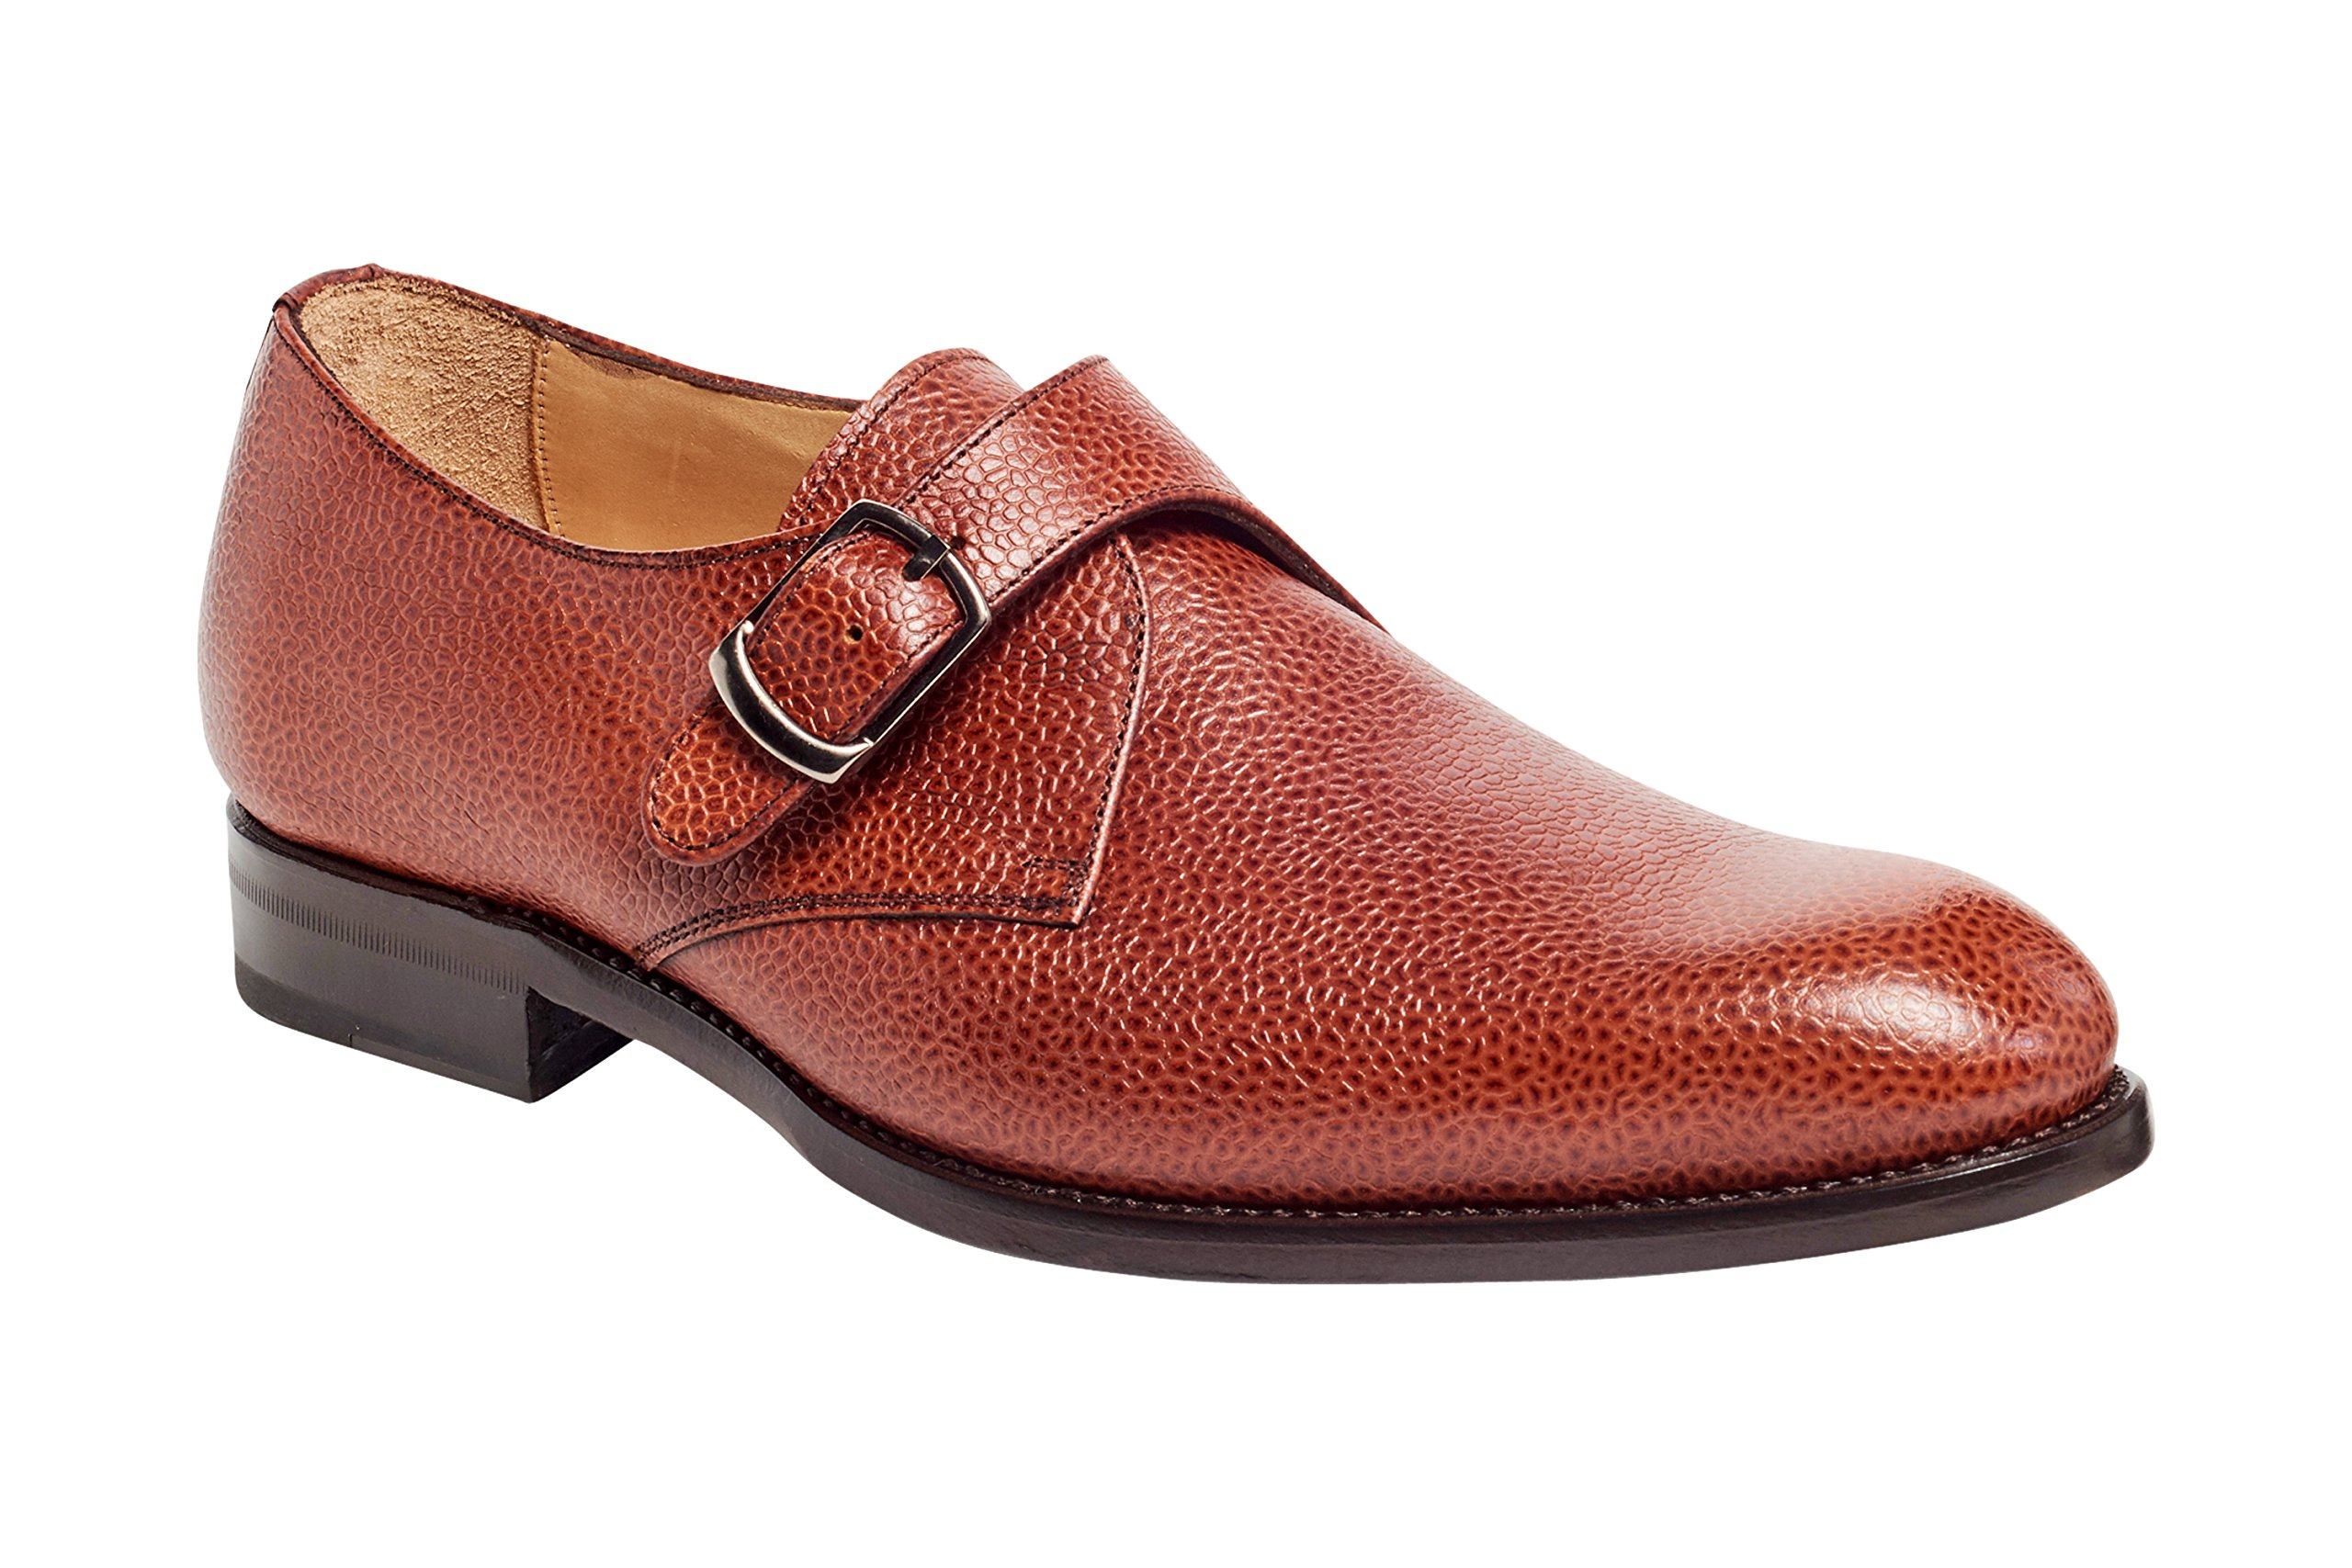 Anthony Veer Men's CALI Monk Strap Dress Shoe in Premium Italian Leather Goodyear Welted